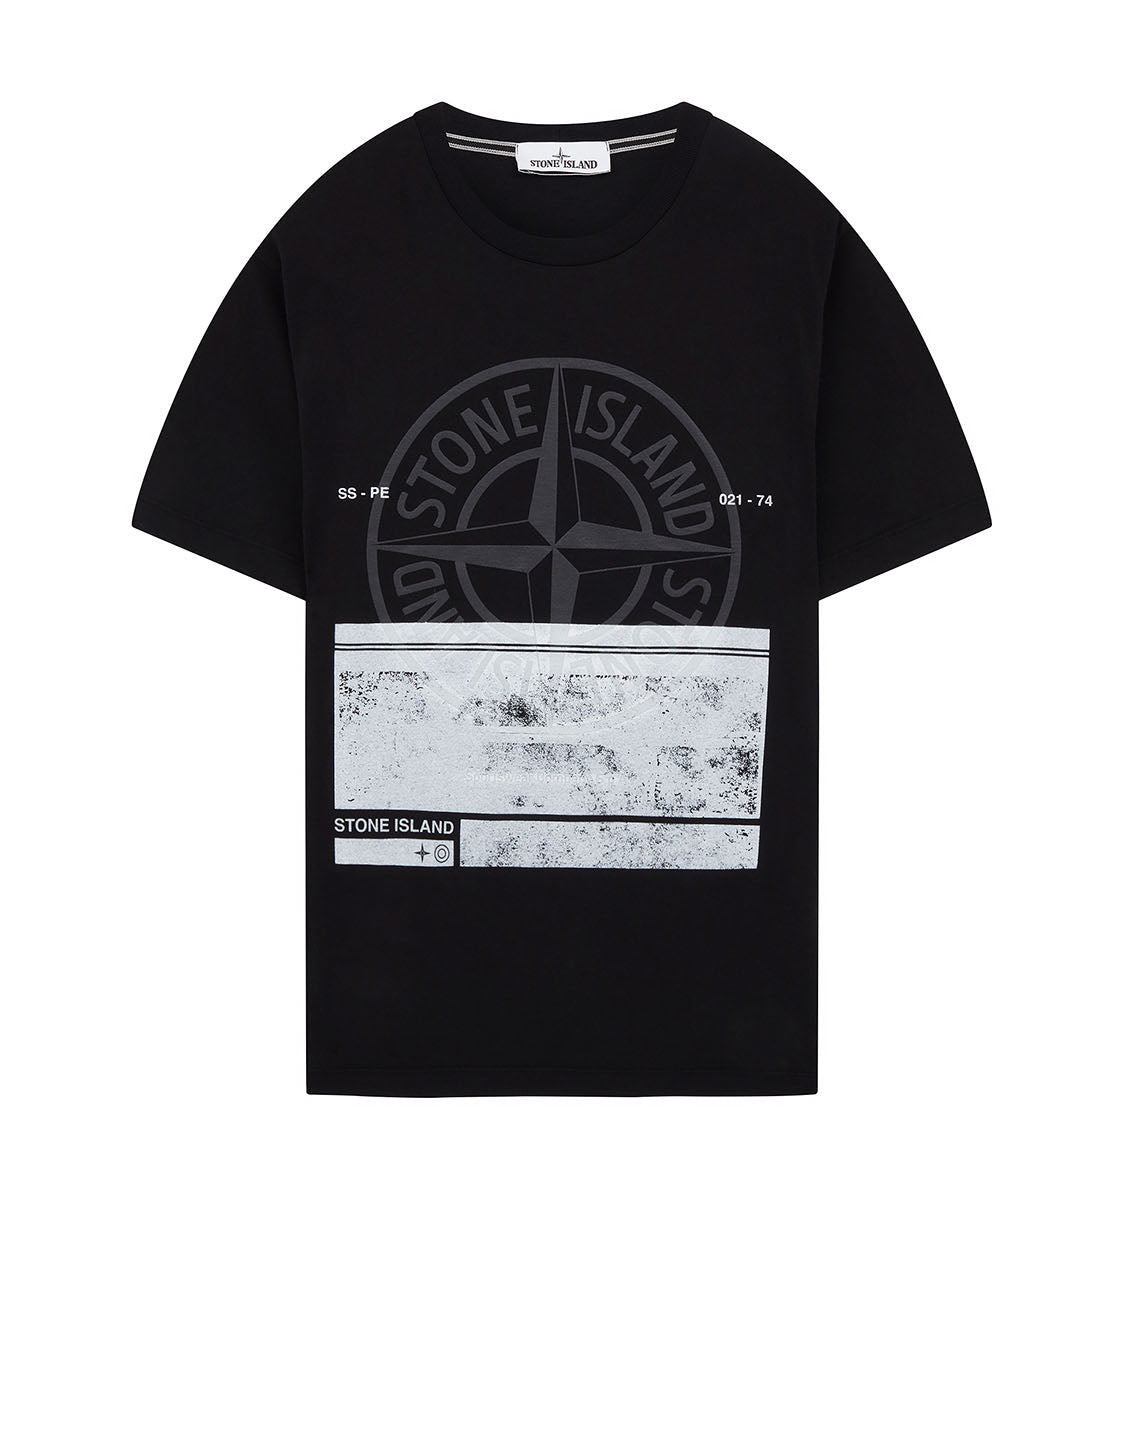 2NS65 'BLOCK ONE' T-Shirt in Black